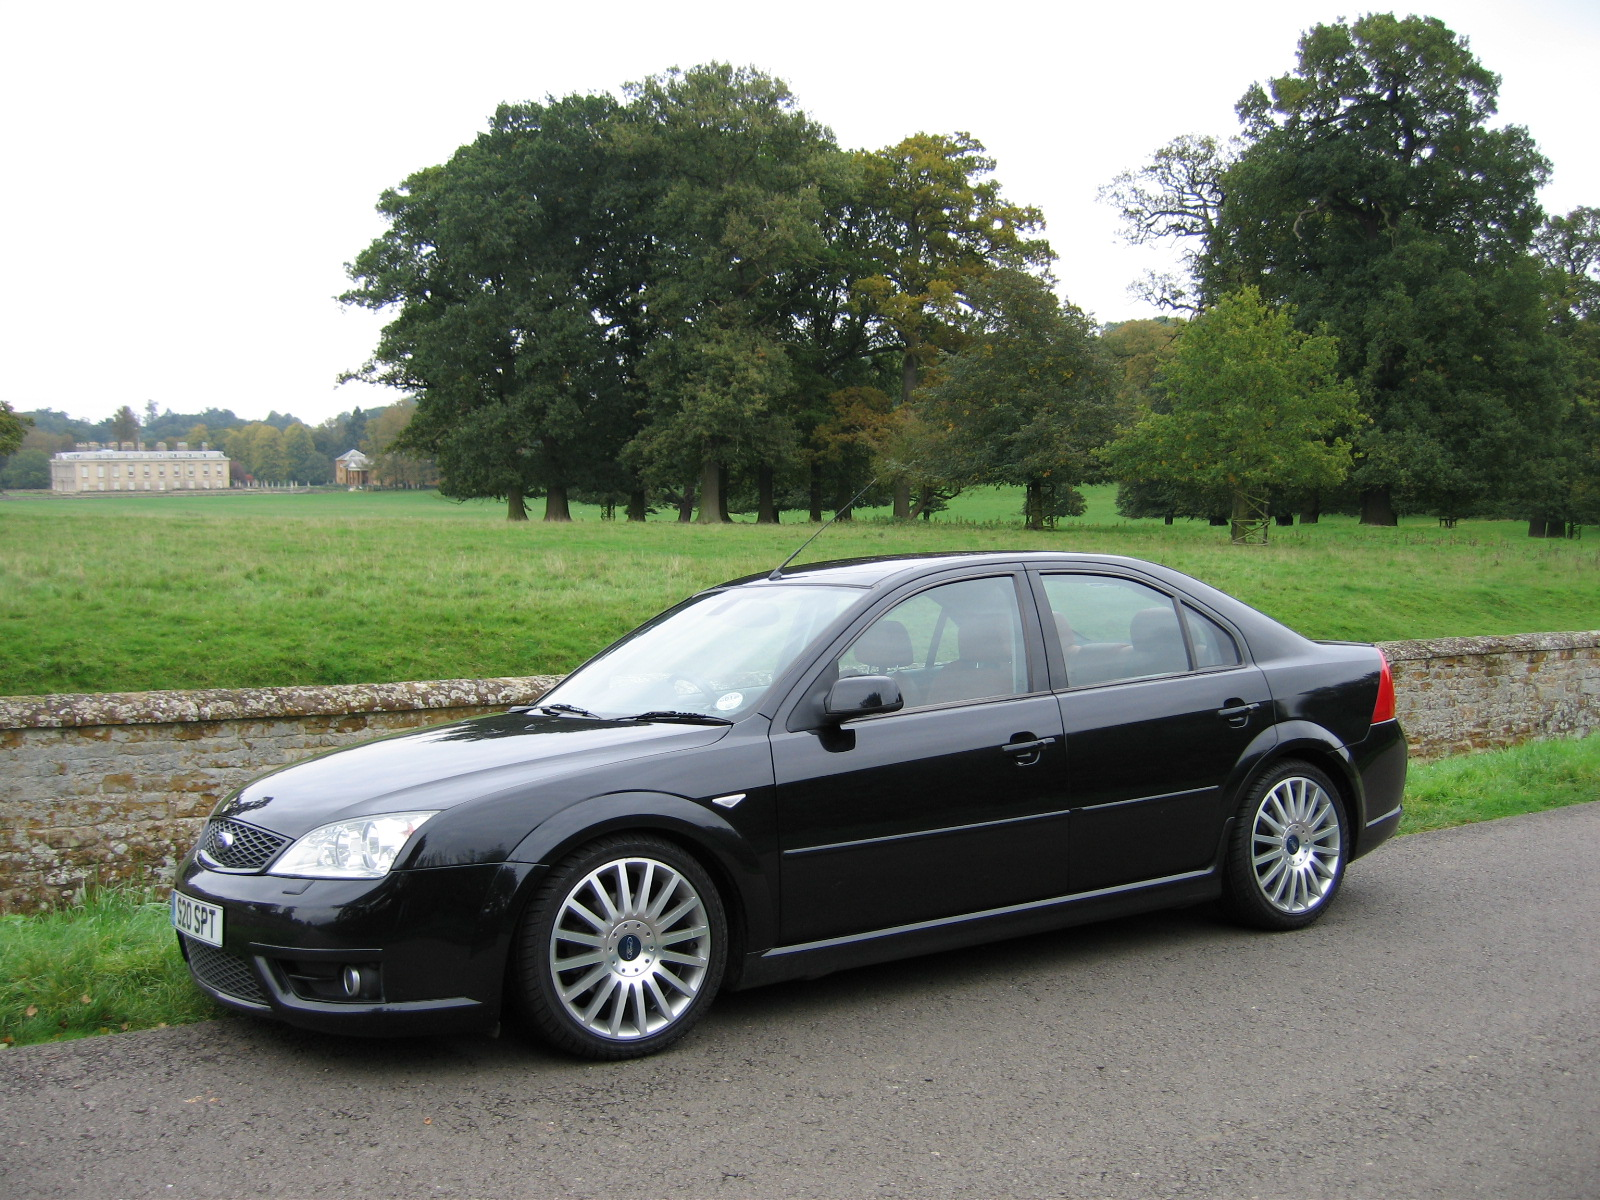 Ford Mondeo 2003 photo - 2